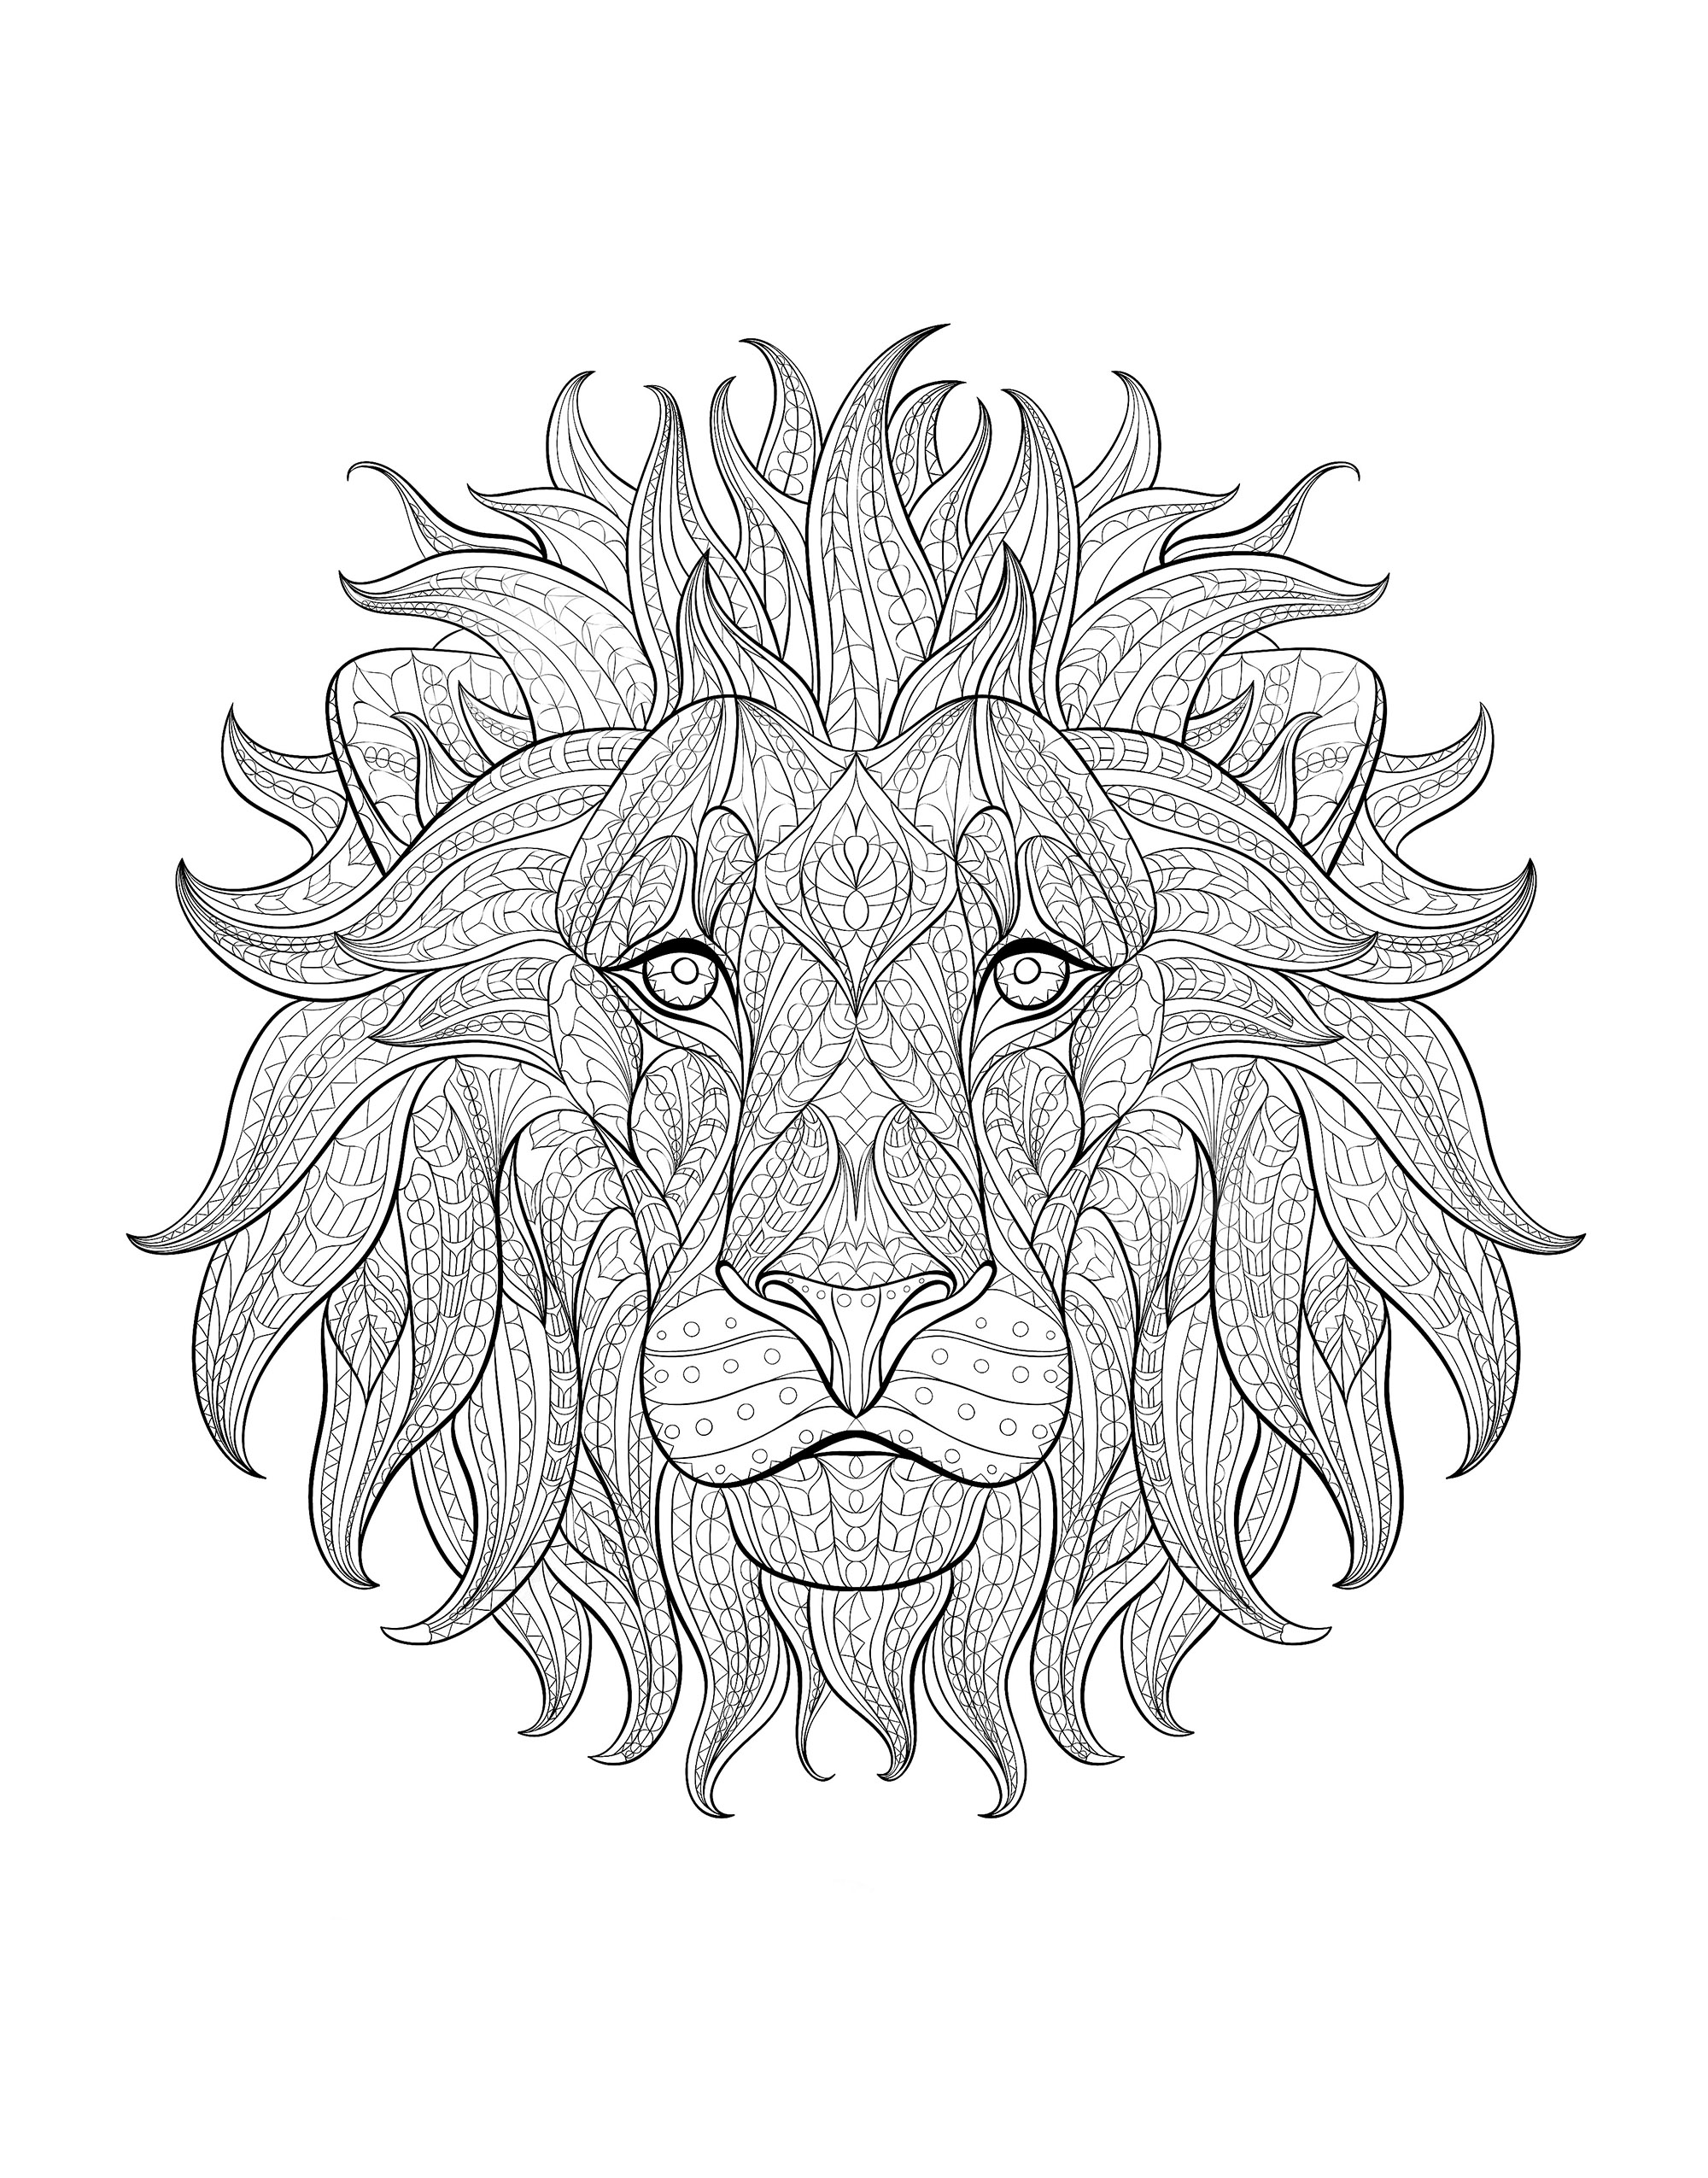 coloring adult lion head 3 - Lion Coloring Pages